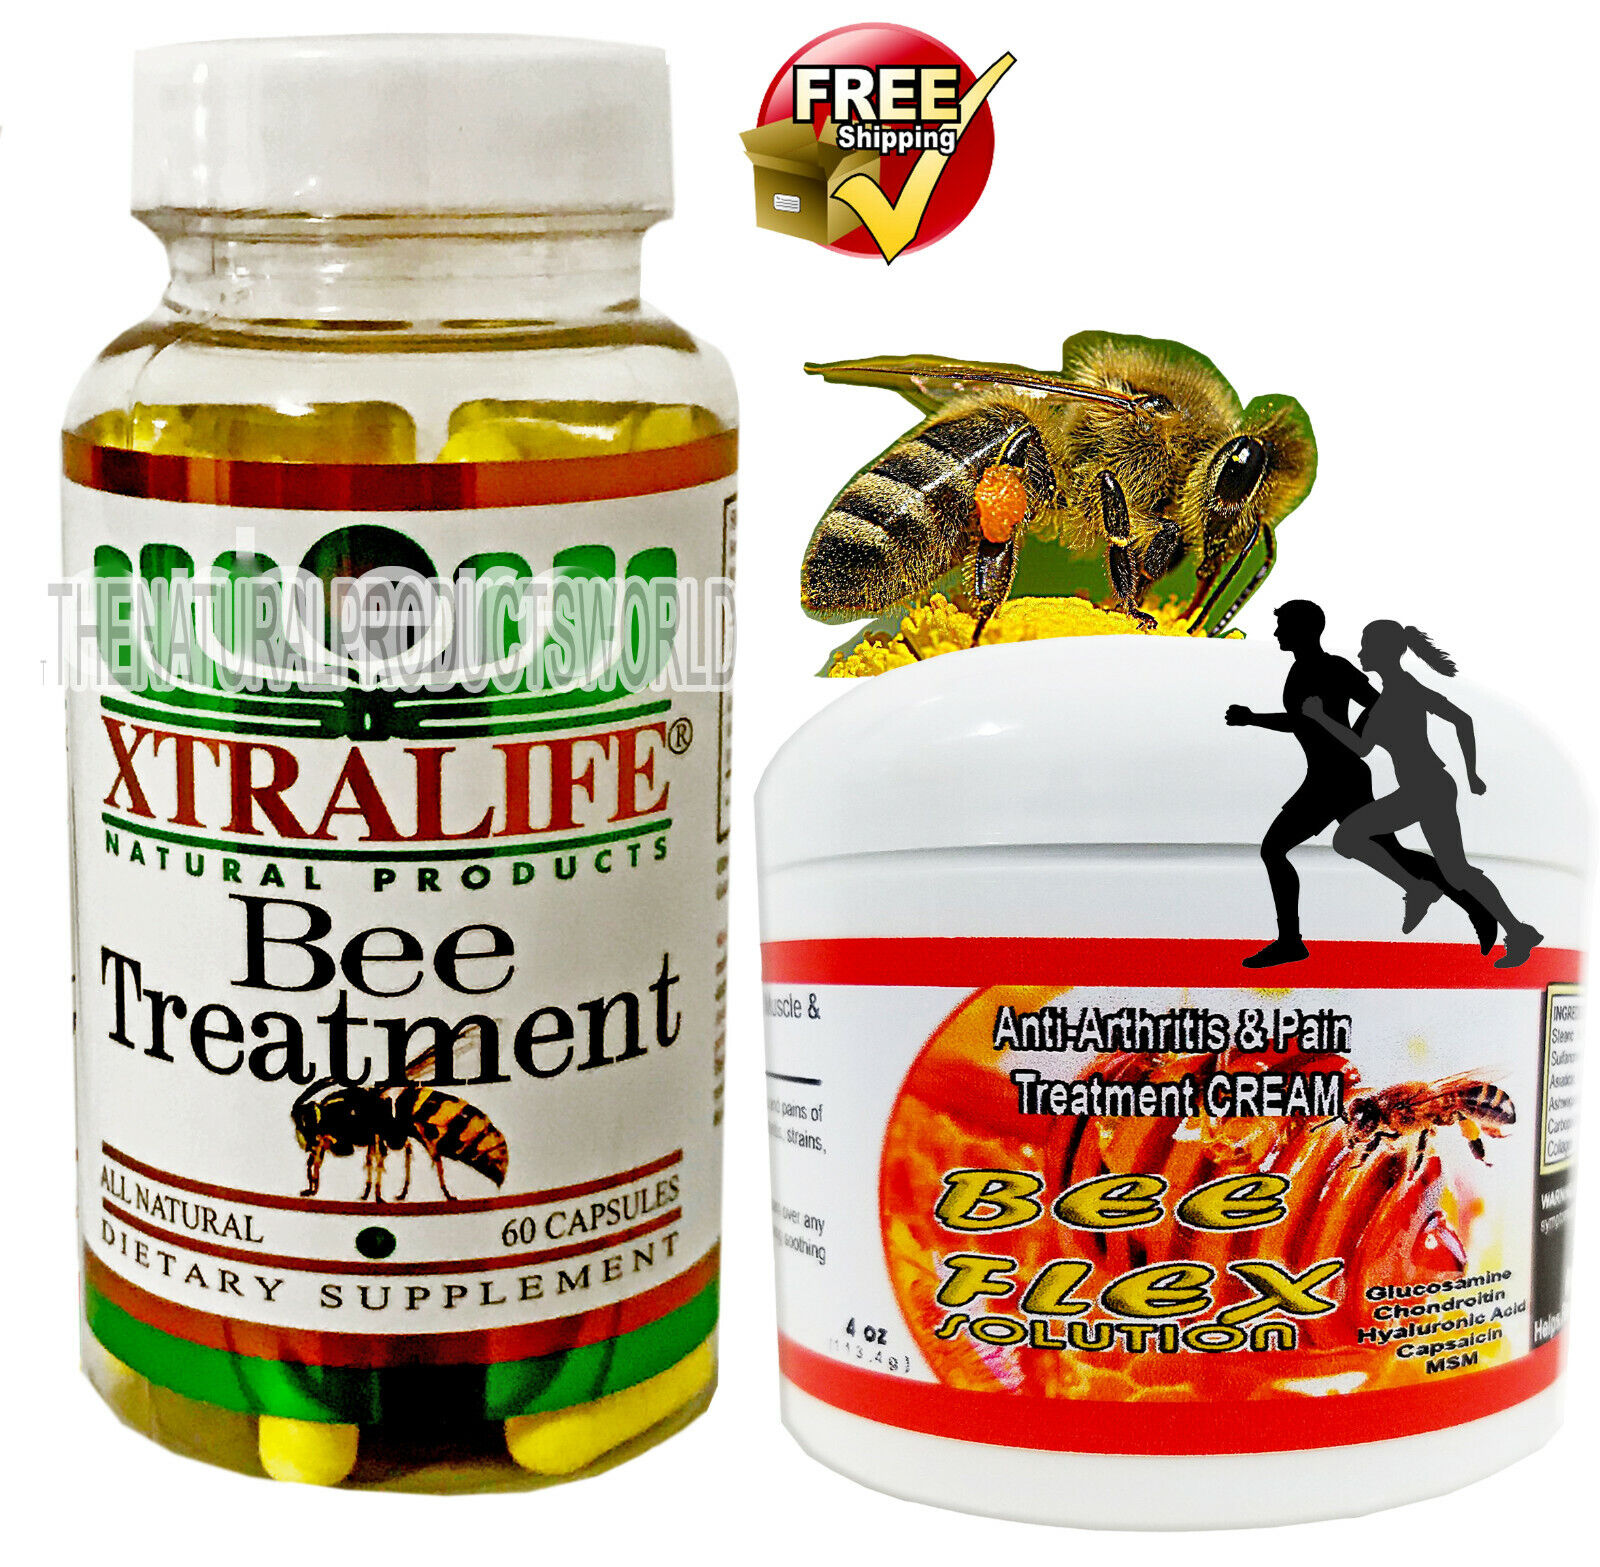 NATURAL BEE TREATMENT anti inflammatory Arthritis Pain Relief Abee Therapy